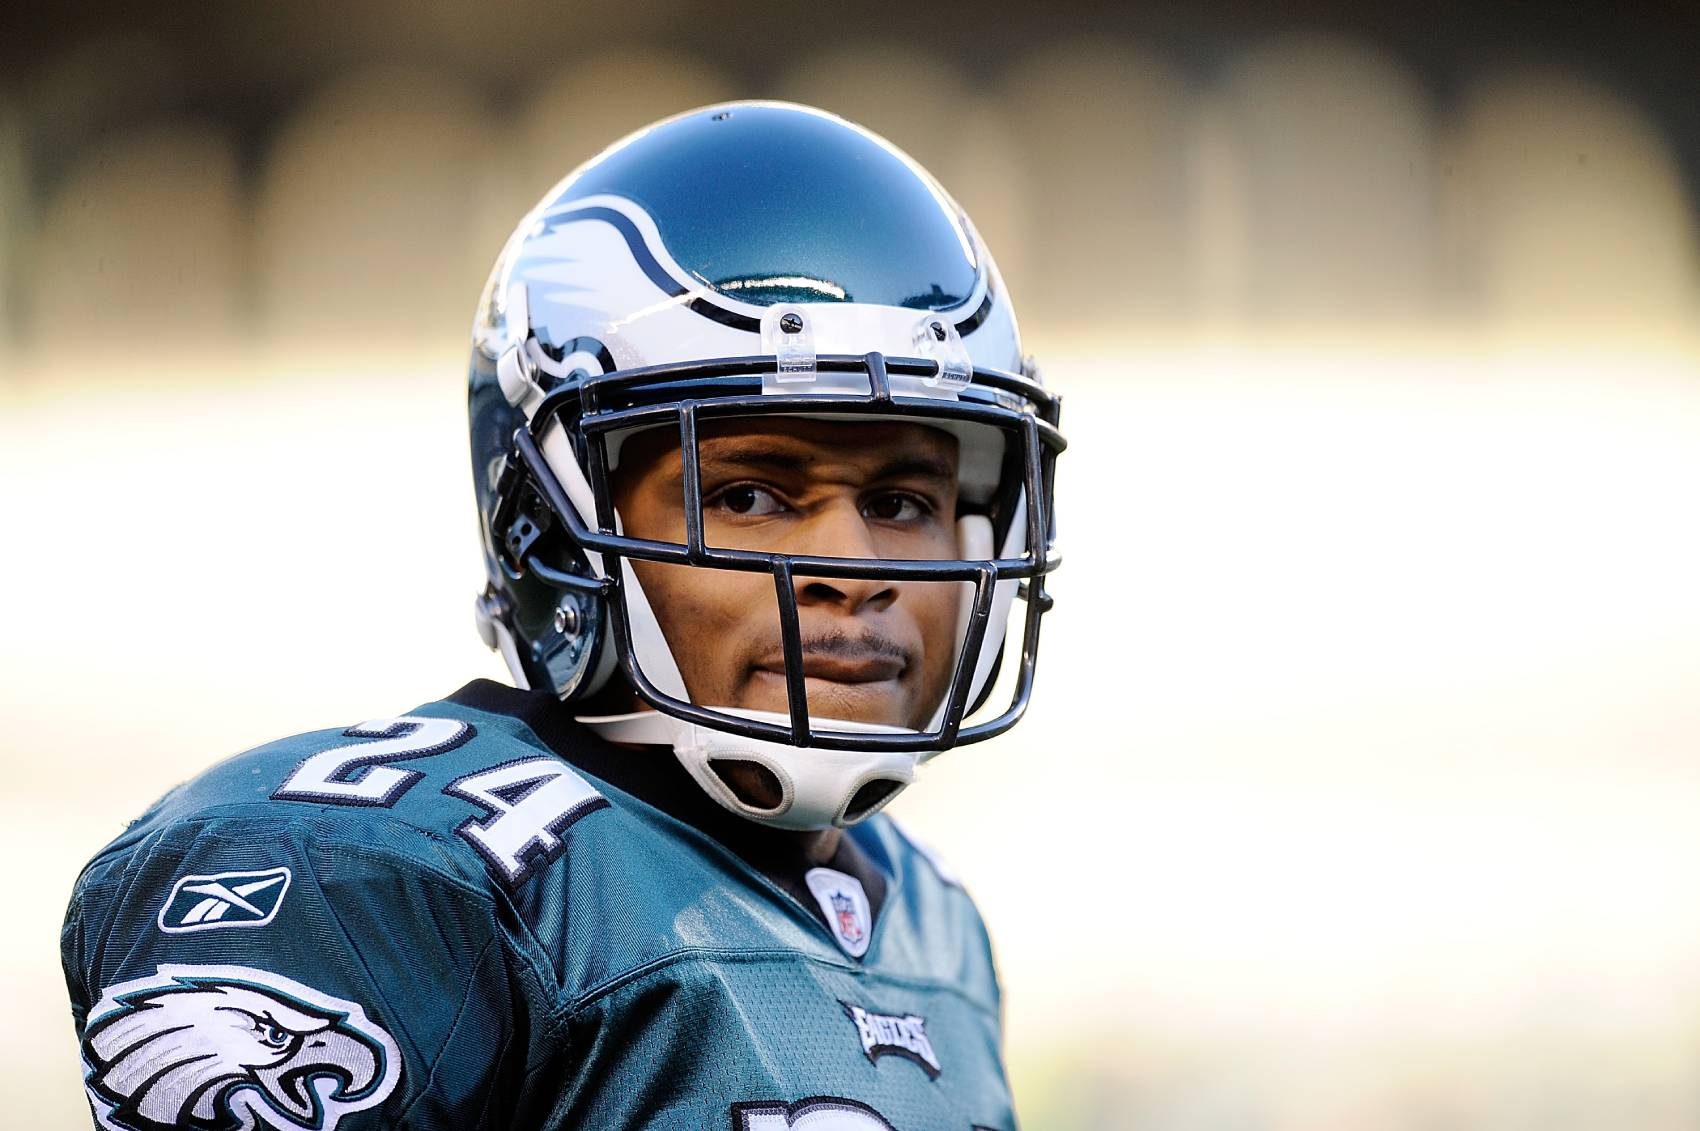 Former Philadelphia Eagles cornerback Nnamdi Asomugha now acts on Broadway.